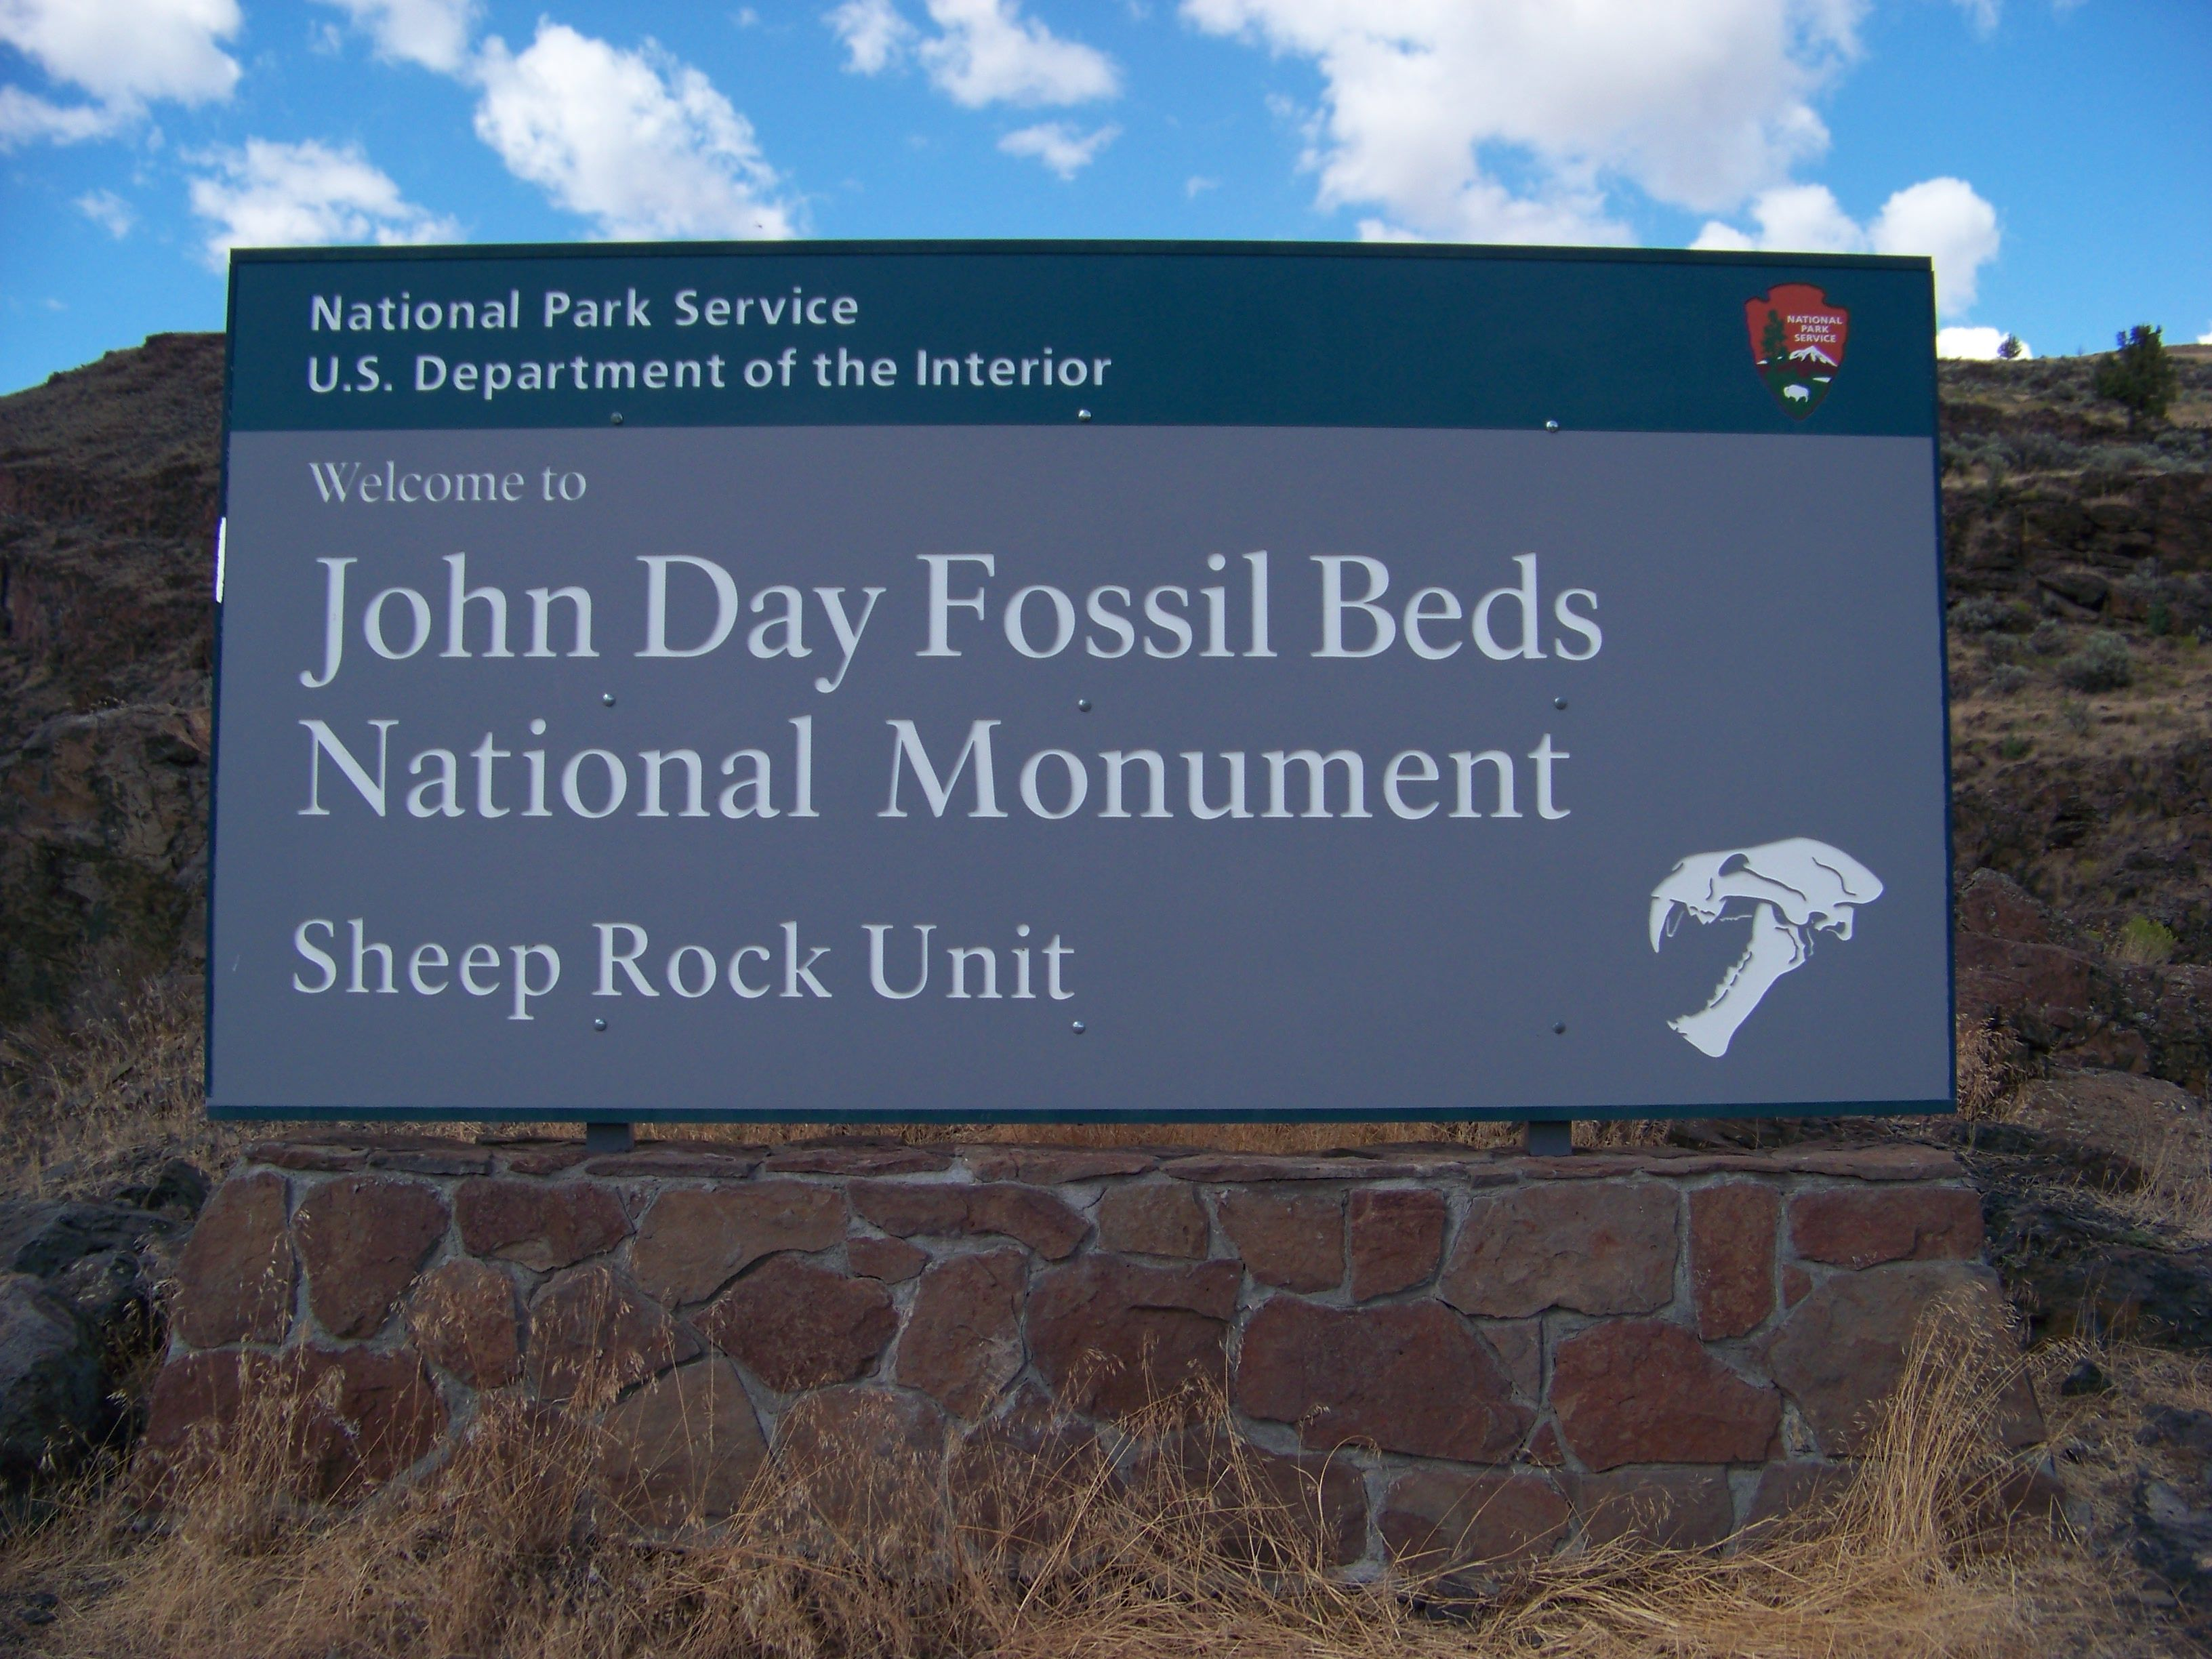 John Day Fossil Bed National Monument, Wheeler County, Oregon - The monument's 13,944 acres encompasses three units: Sheep Rock Unit 8,843 acres, Painted Hills Unit 3,132 acres, and Clarno Unit 1,969 acres.